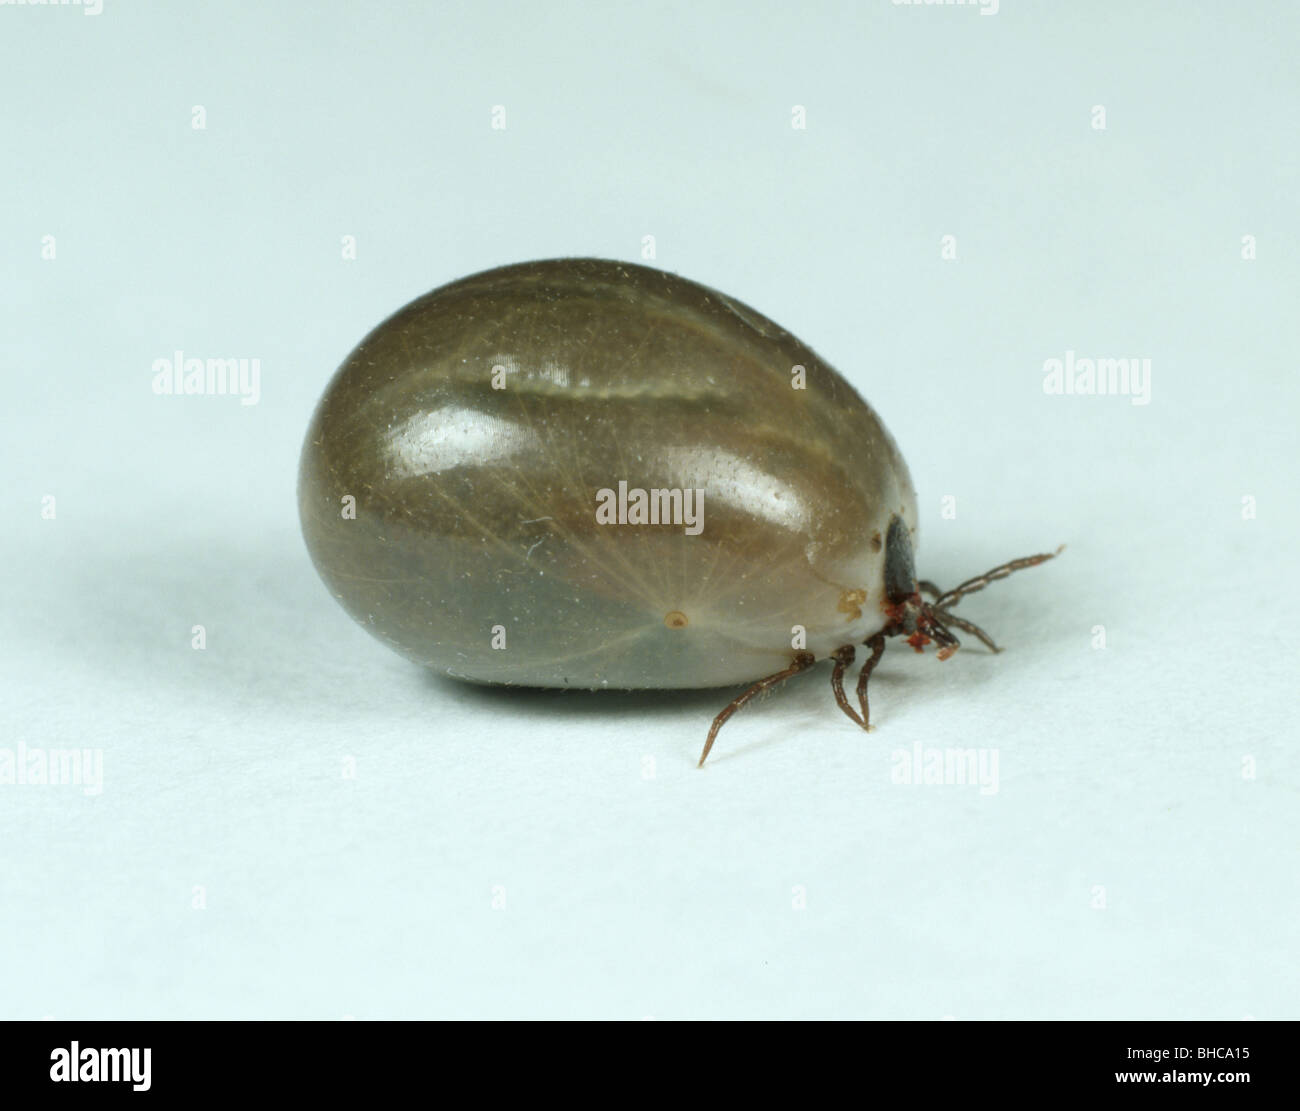 An engorged adult tick (Ixodes spp) fallen from a dog after a blood feed - Stock Image